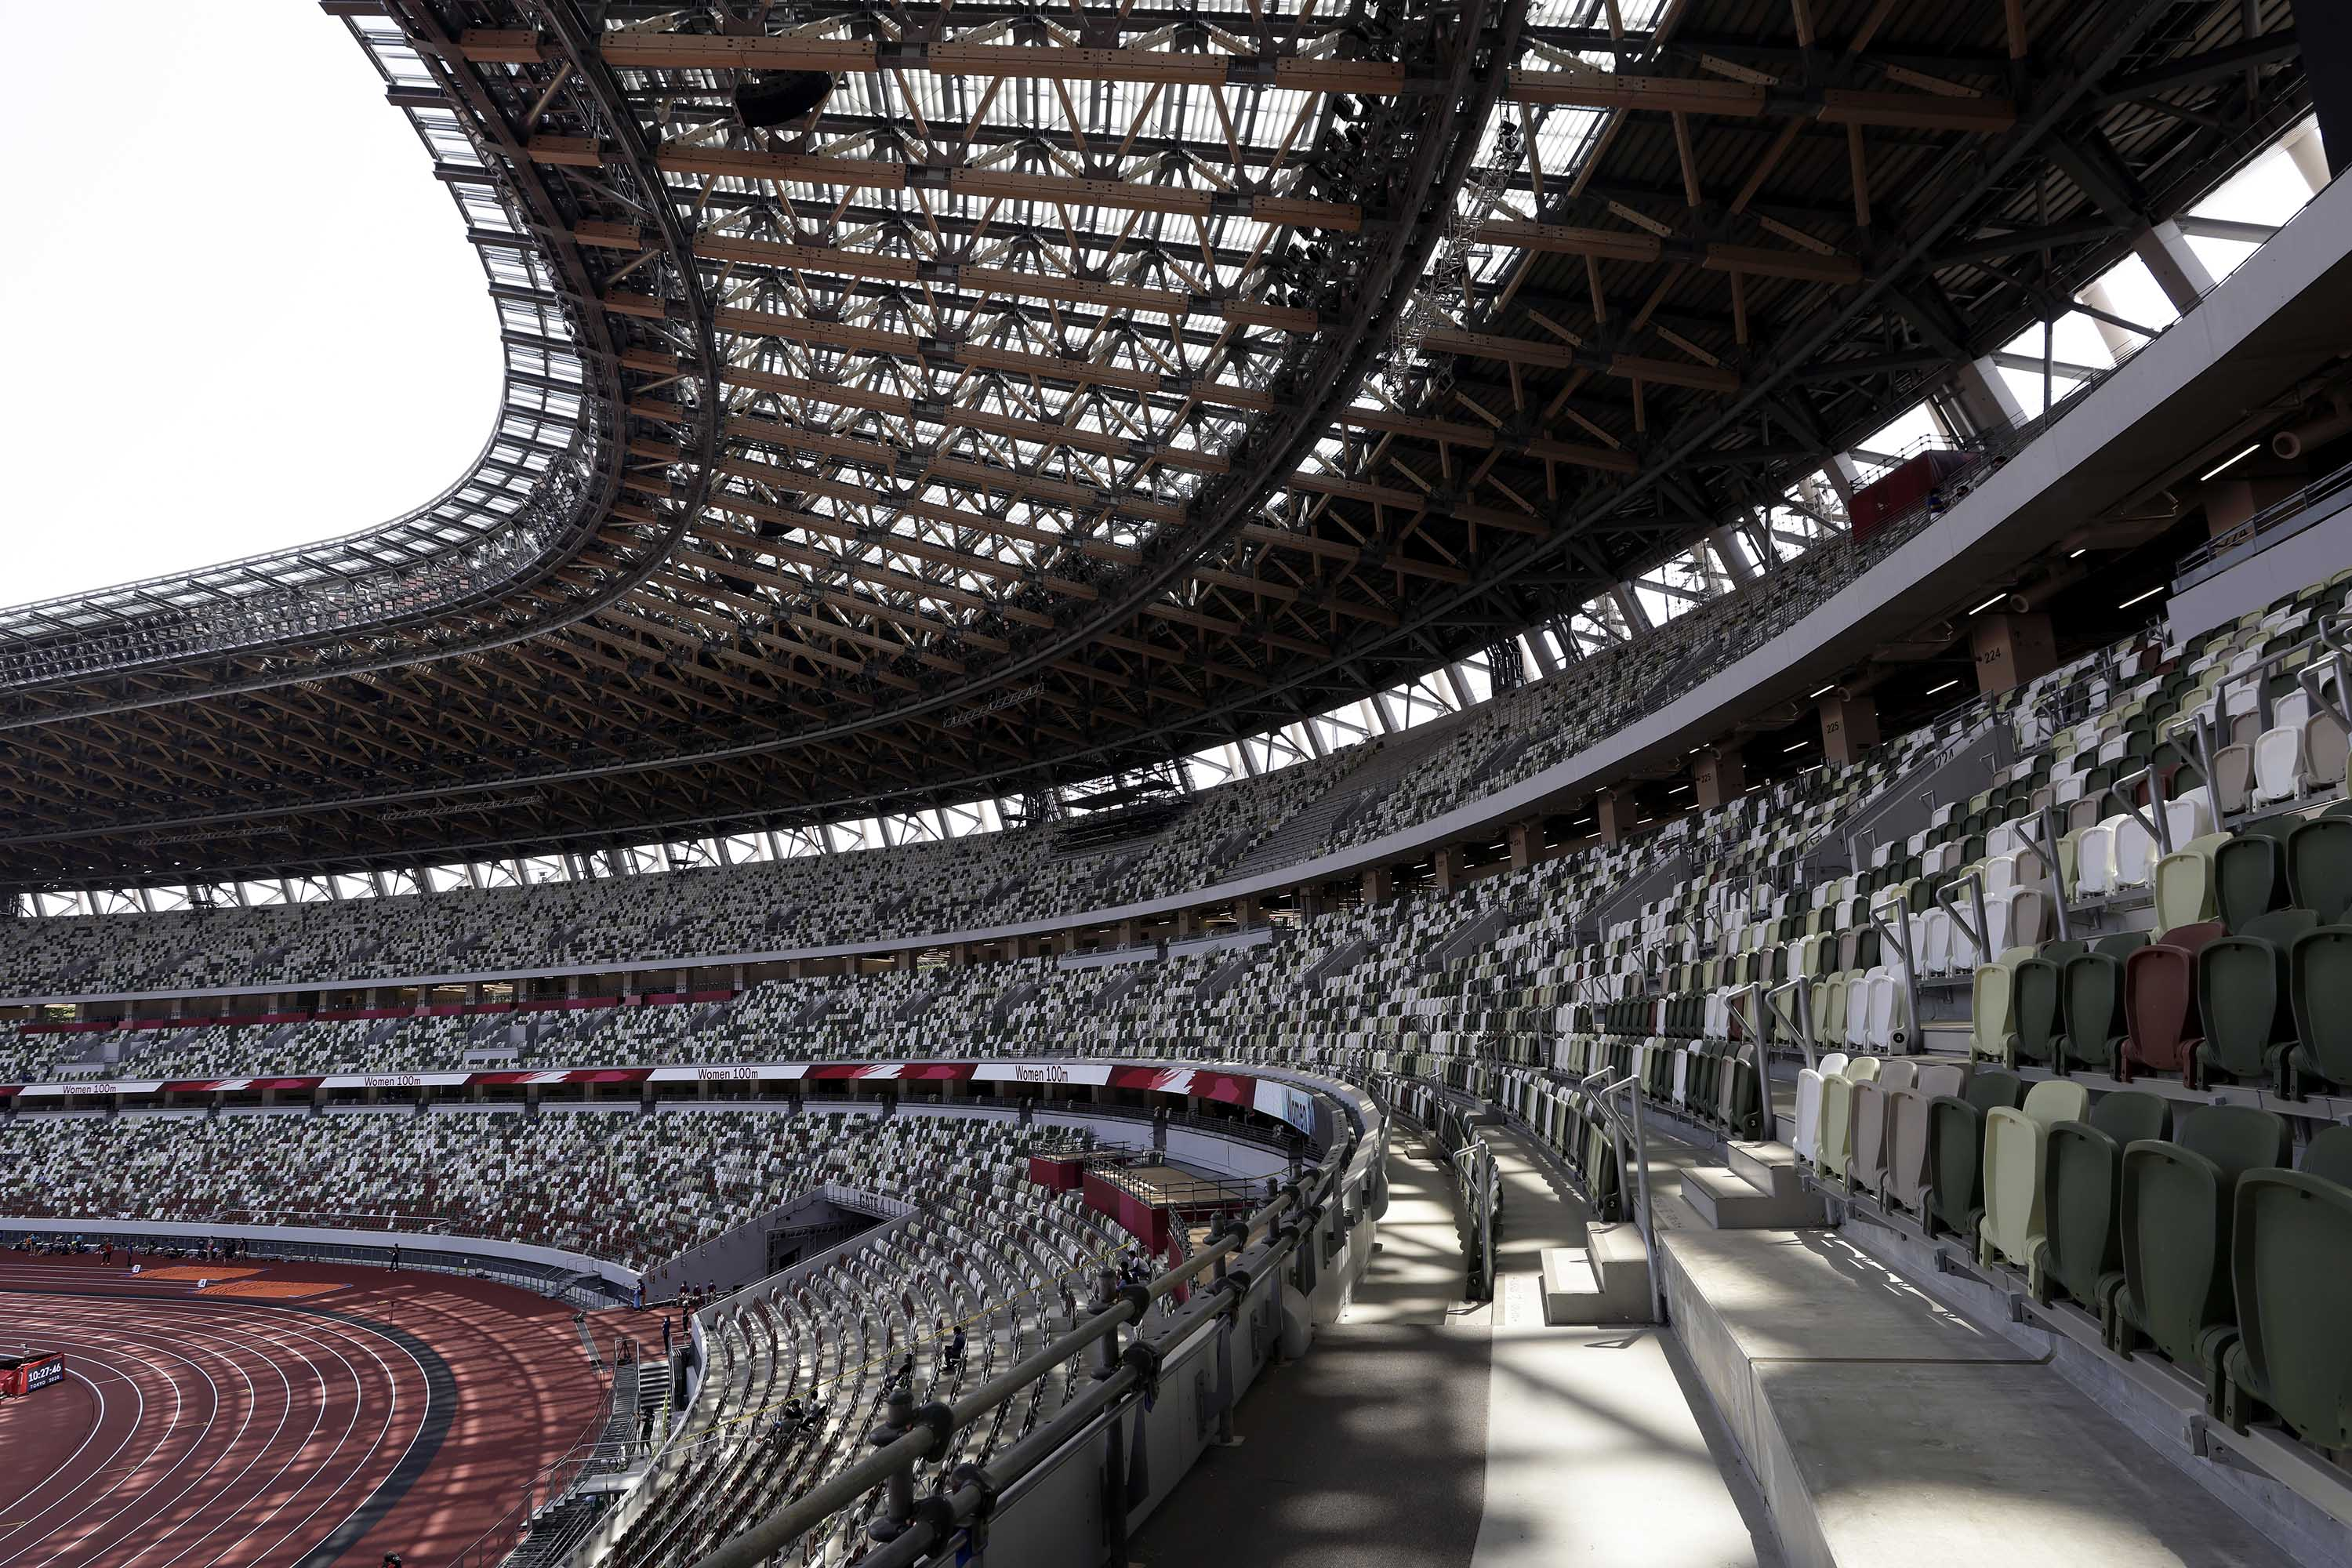 Japan's top Covid-19 adviser says holding the Olympics without spectators is 'desirable'